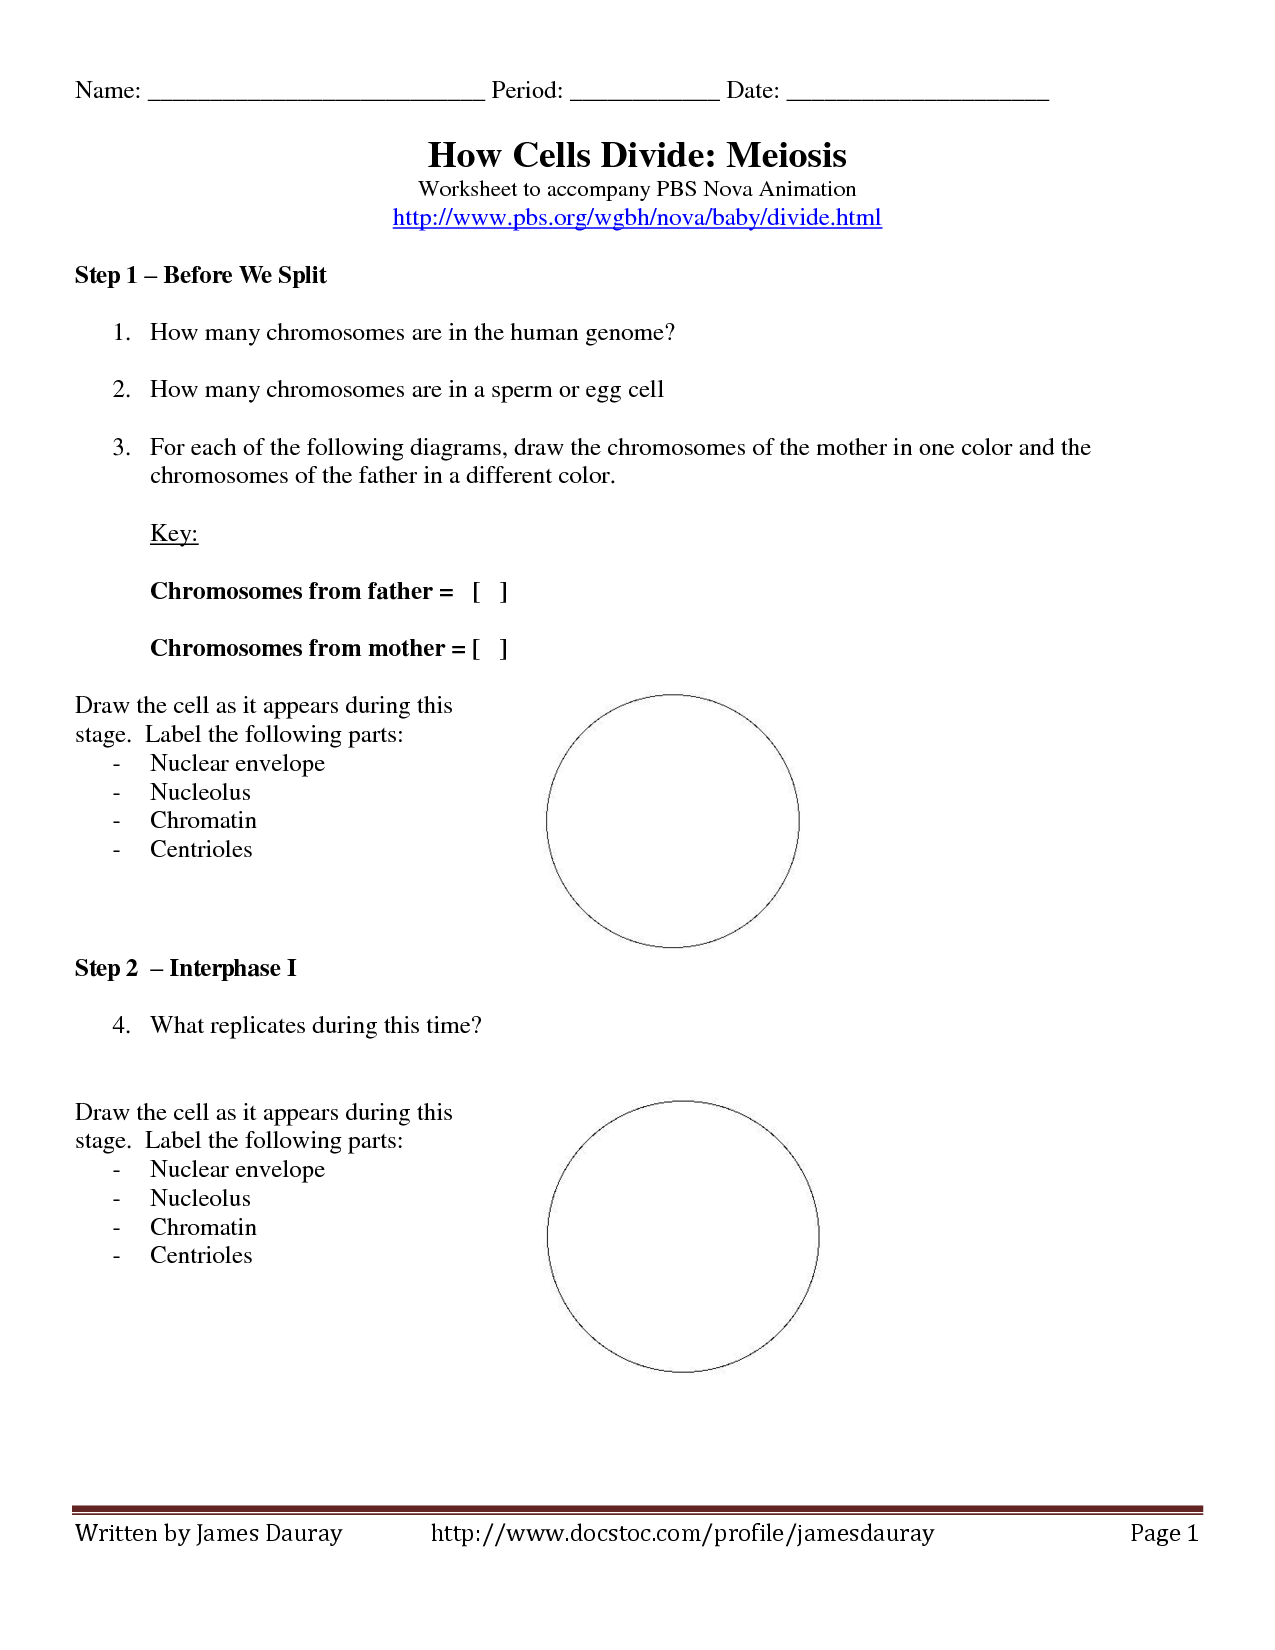 14 Best Images Of Dna Workshop Pbs Worksheet Answers